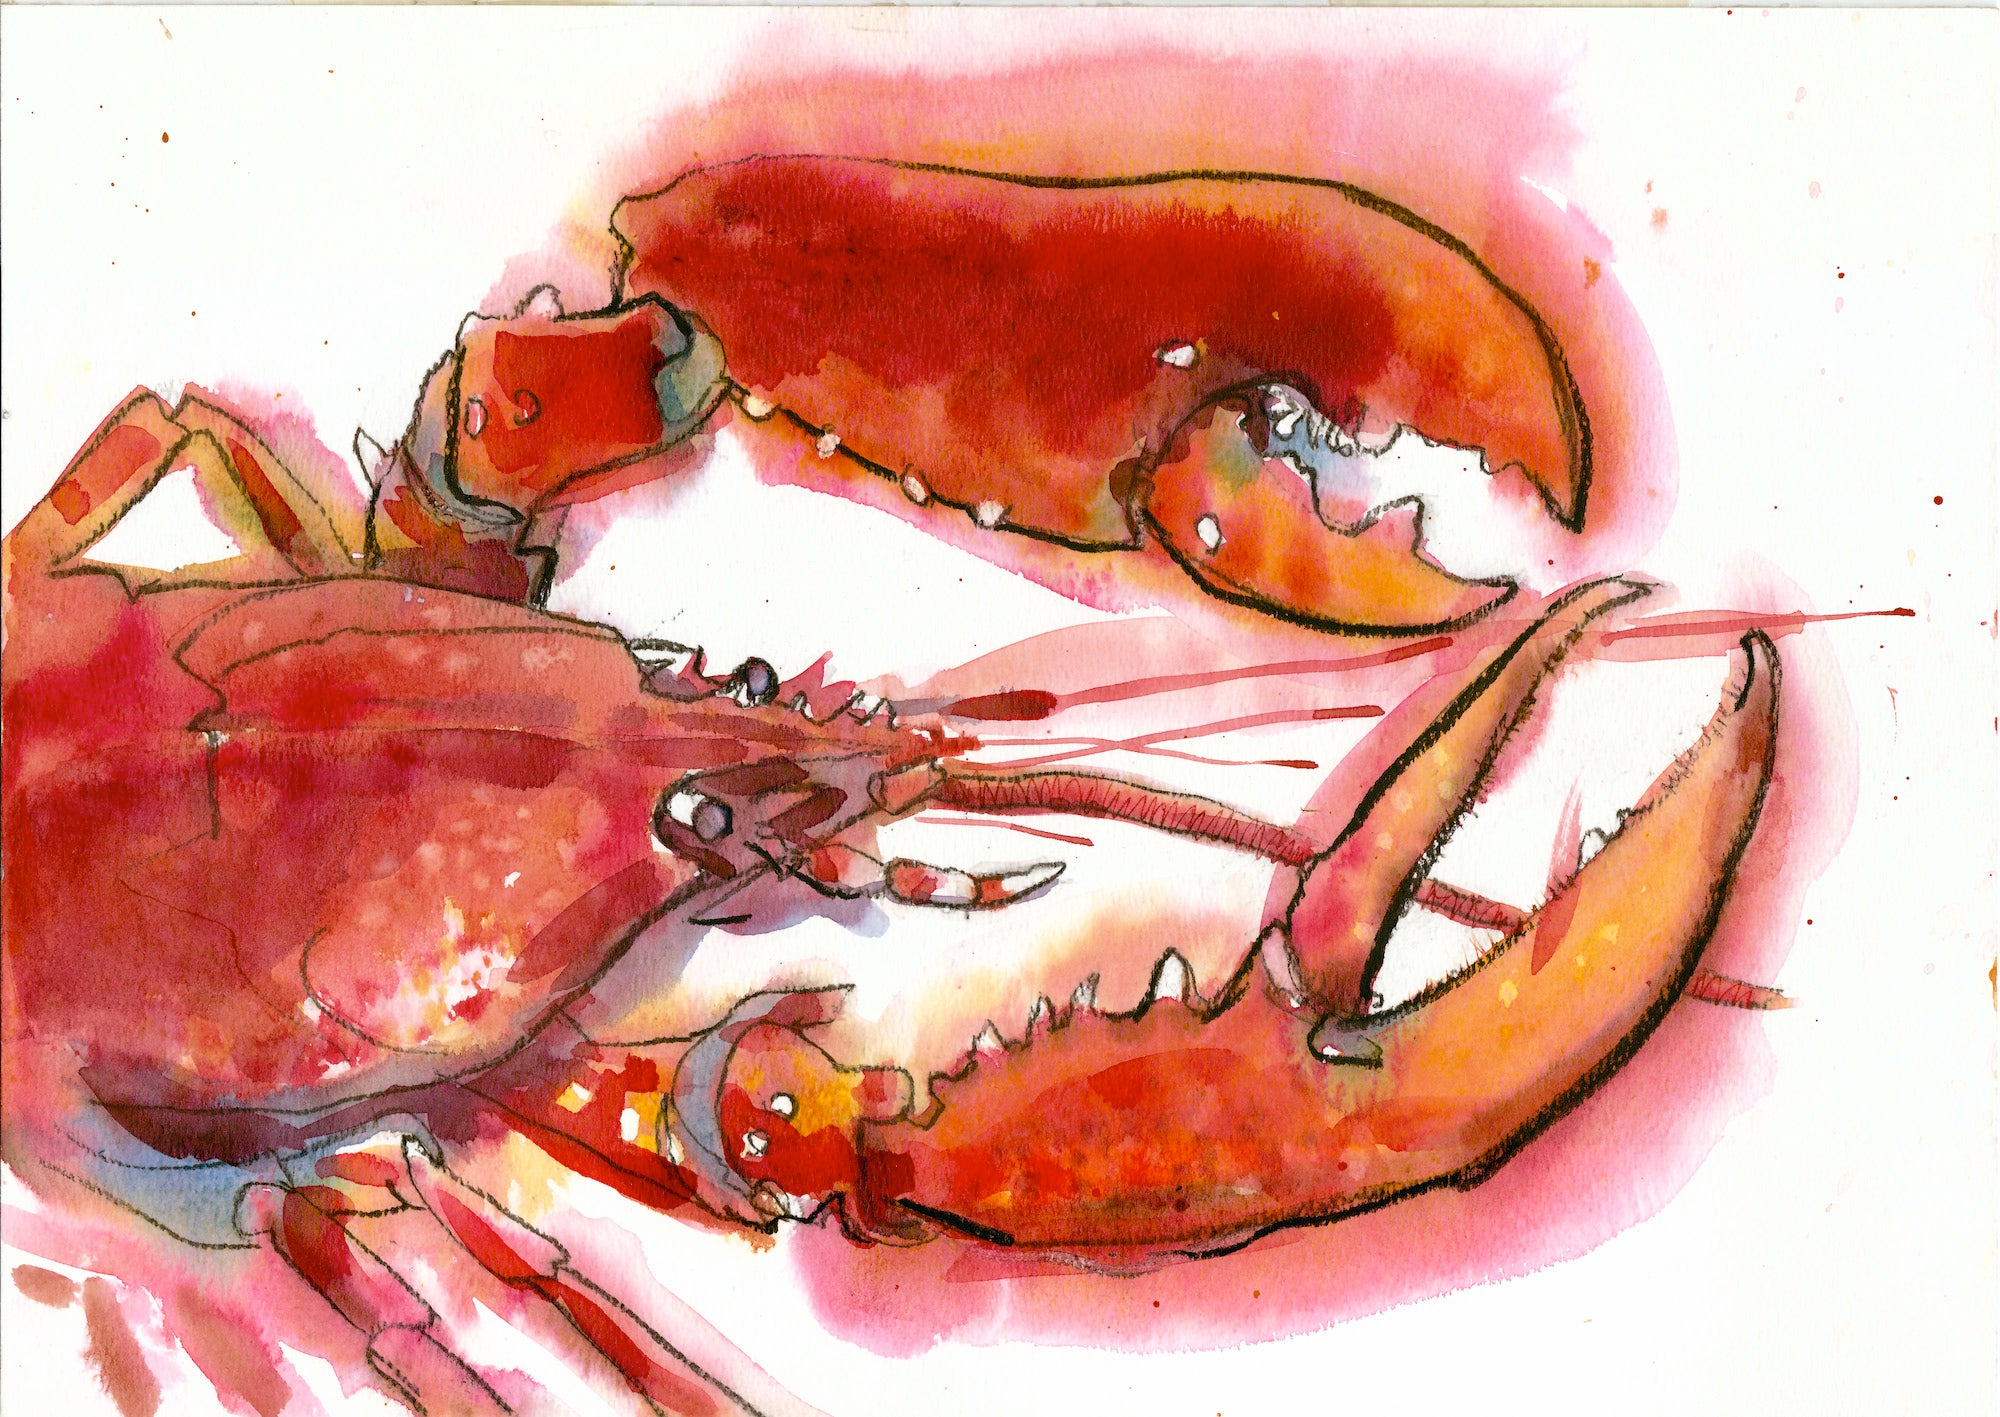 """Newlyn lobster 2"" Signed Giclee Print Mixed Media by Sarah Bell"